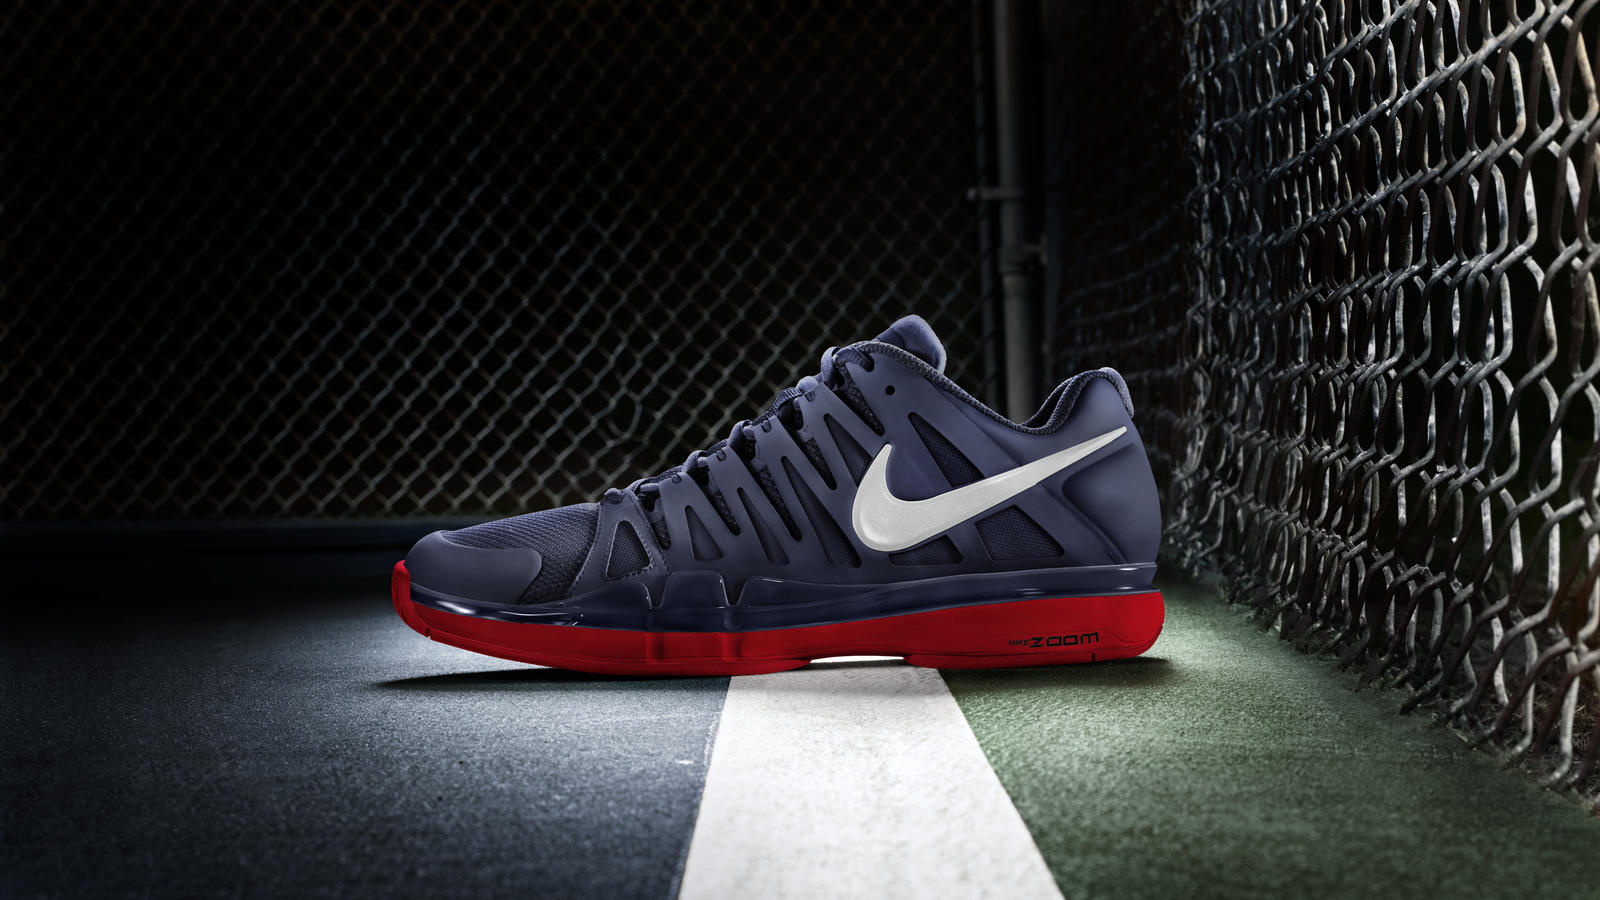 Nike_Zoom_Vapor_9_Tour_NIGHT